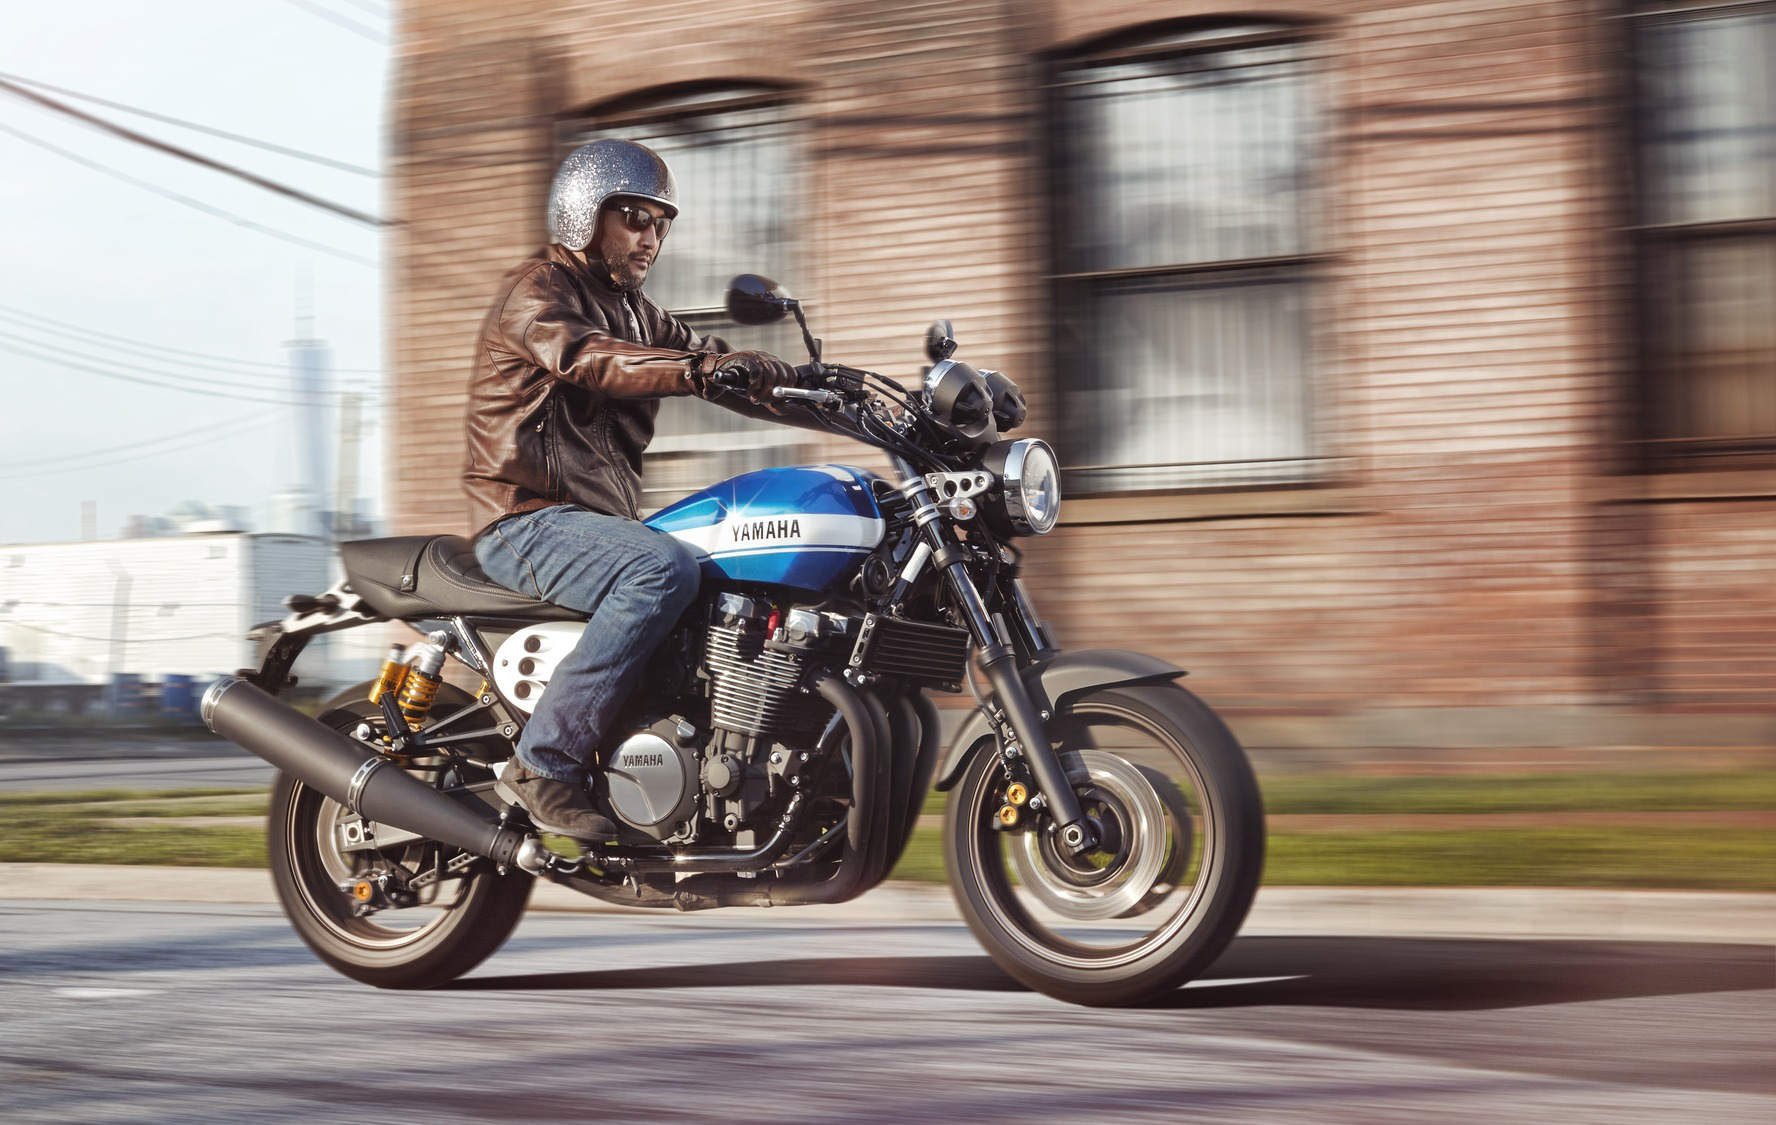 No Bike For You Yamaha Reveals Hipster Restyled Xjr1300 For